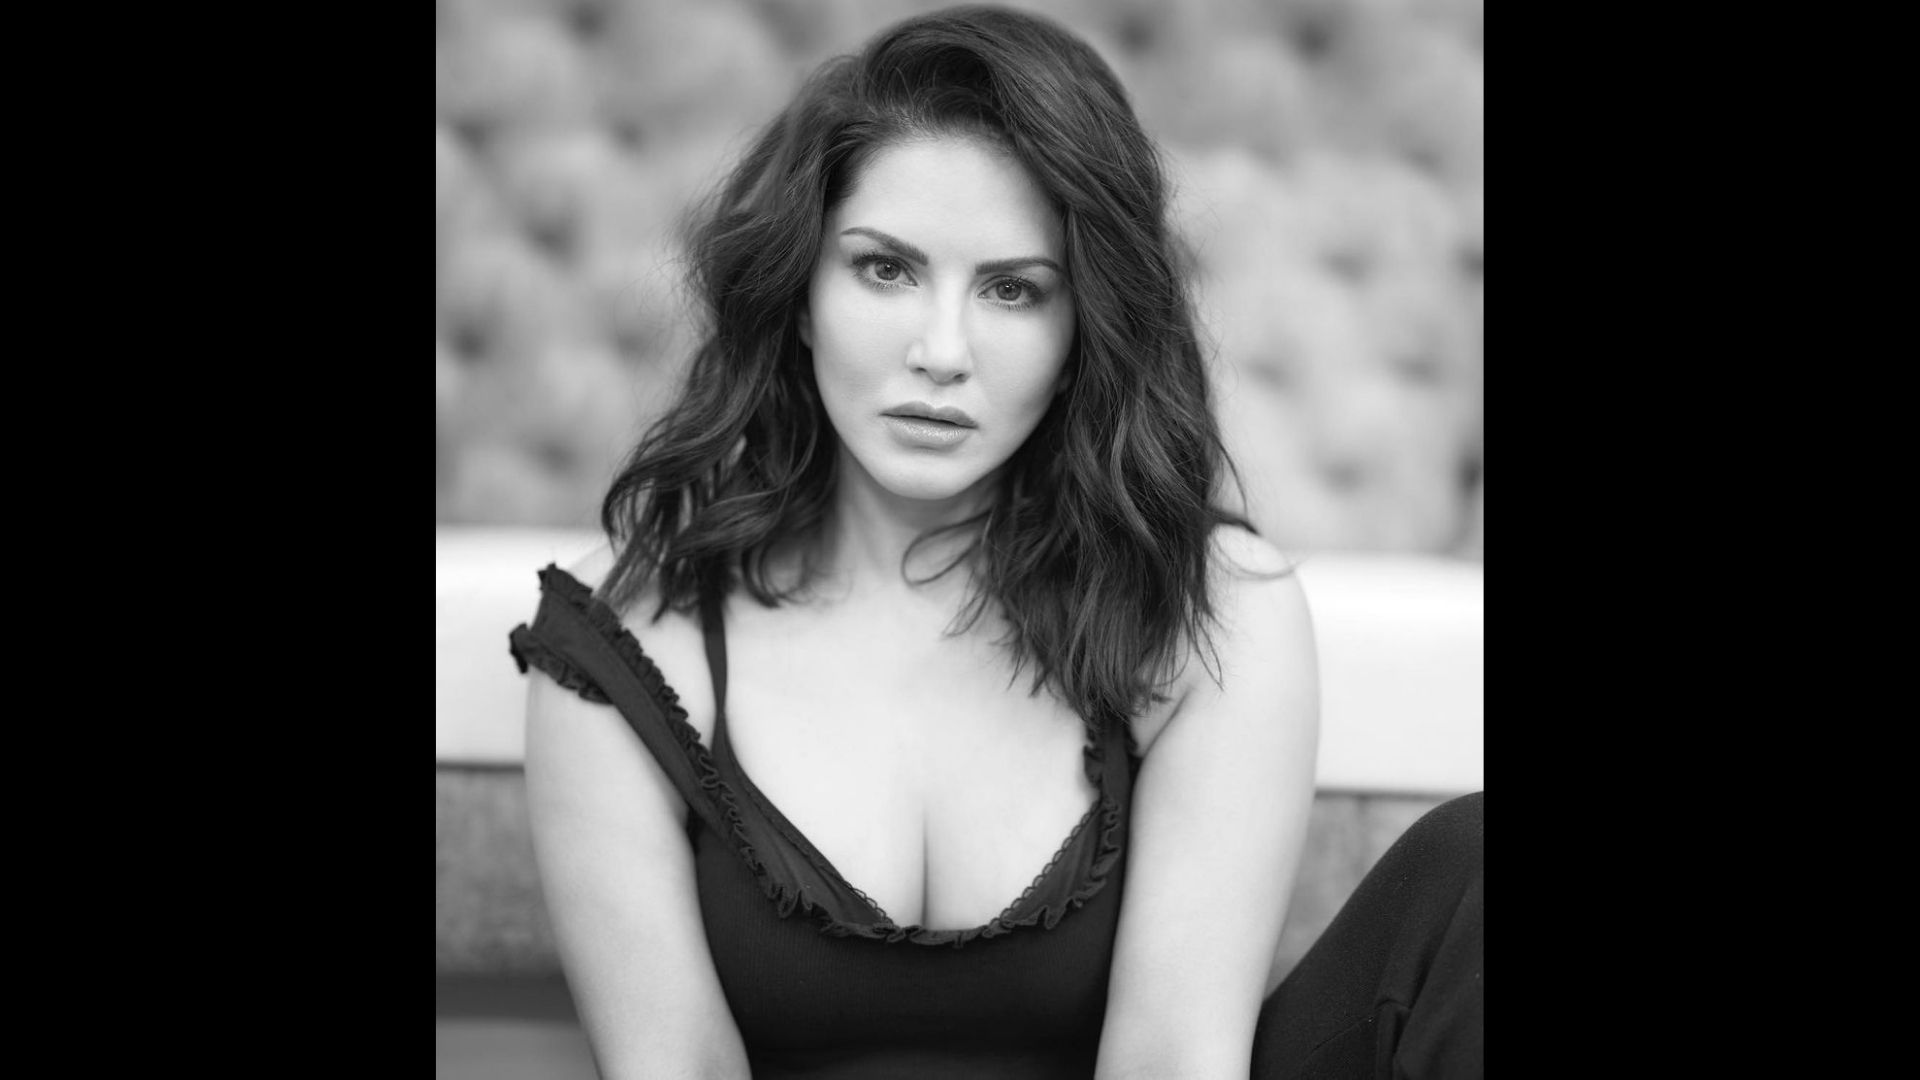 Sunny Leone's Monochromatic Posts Will Make You Weak In Your Kness – SEE PICS